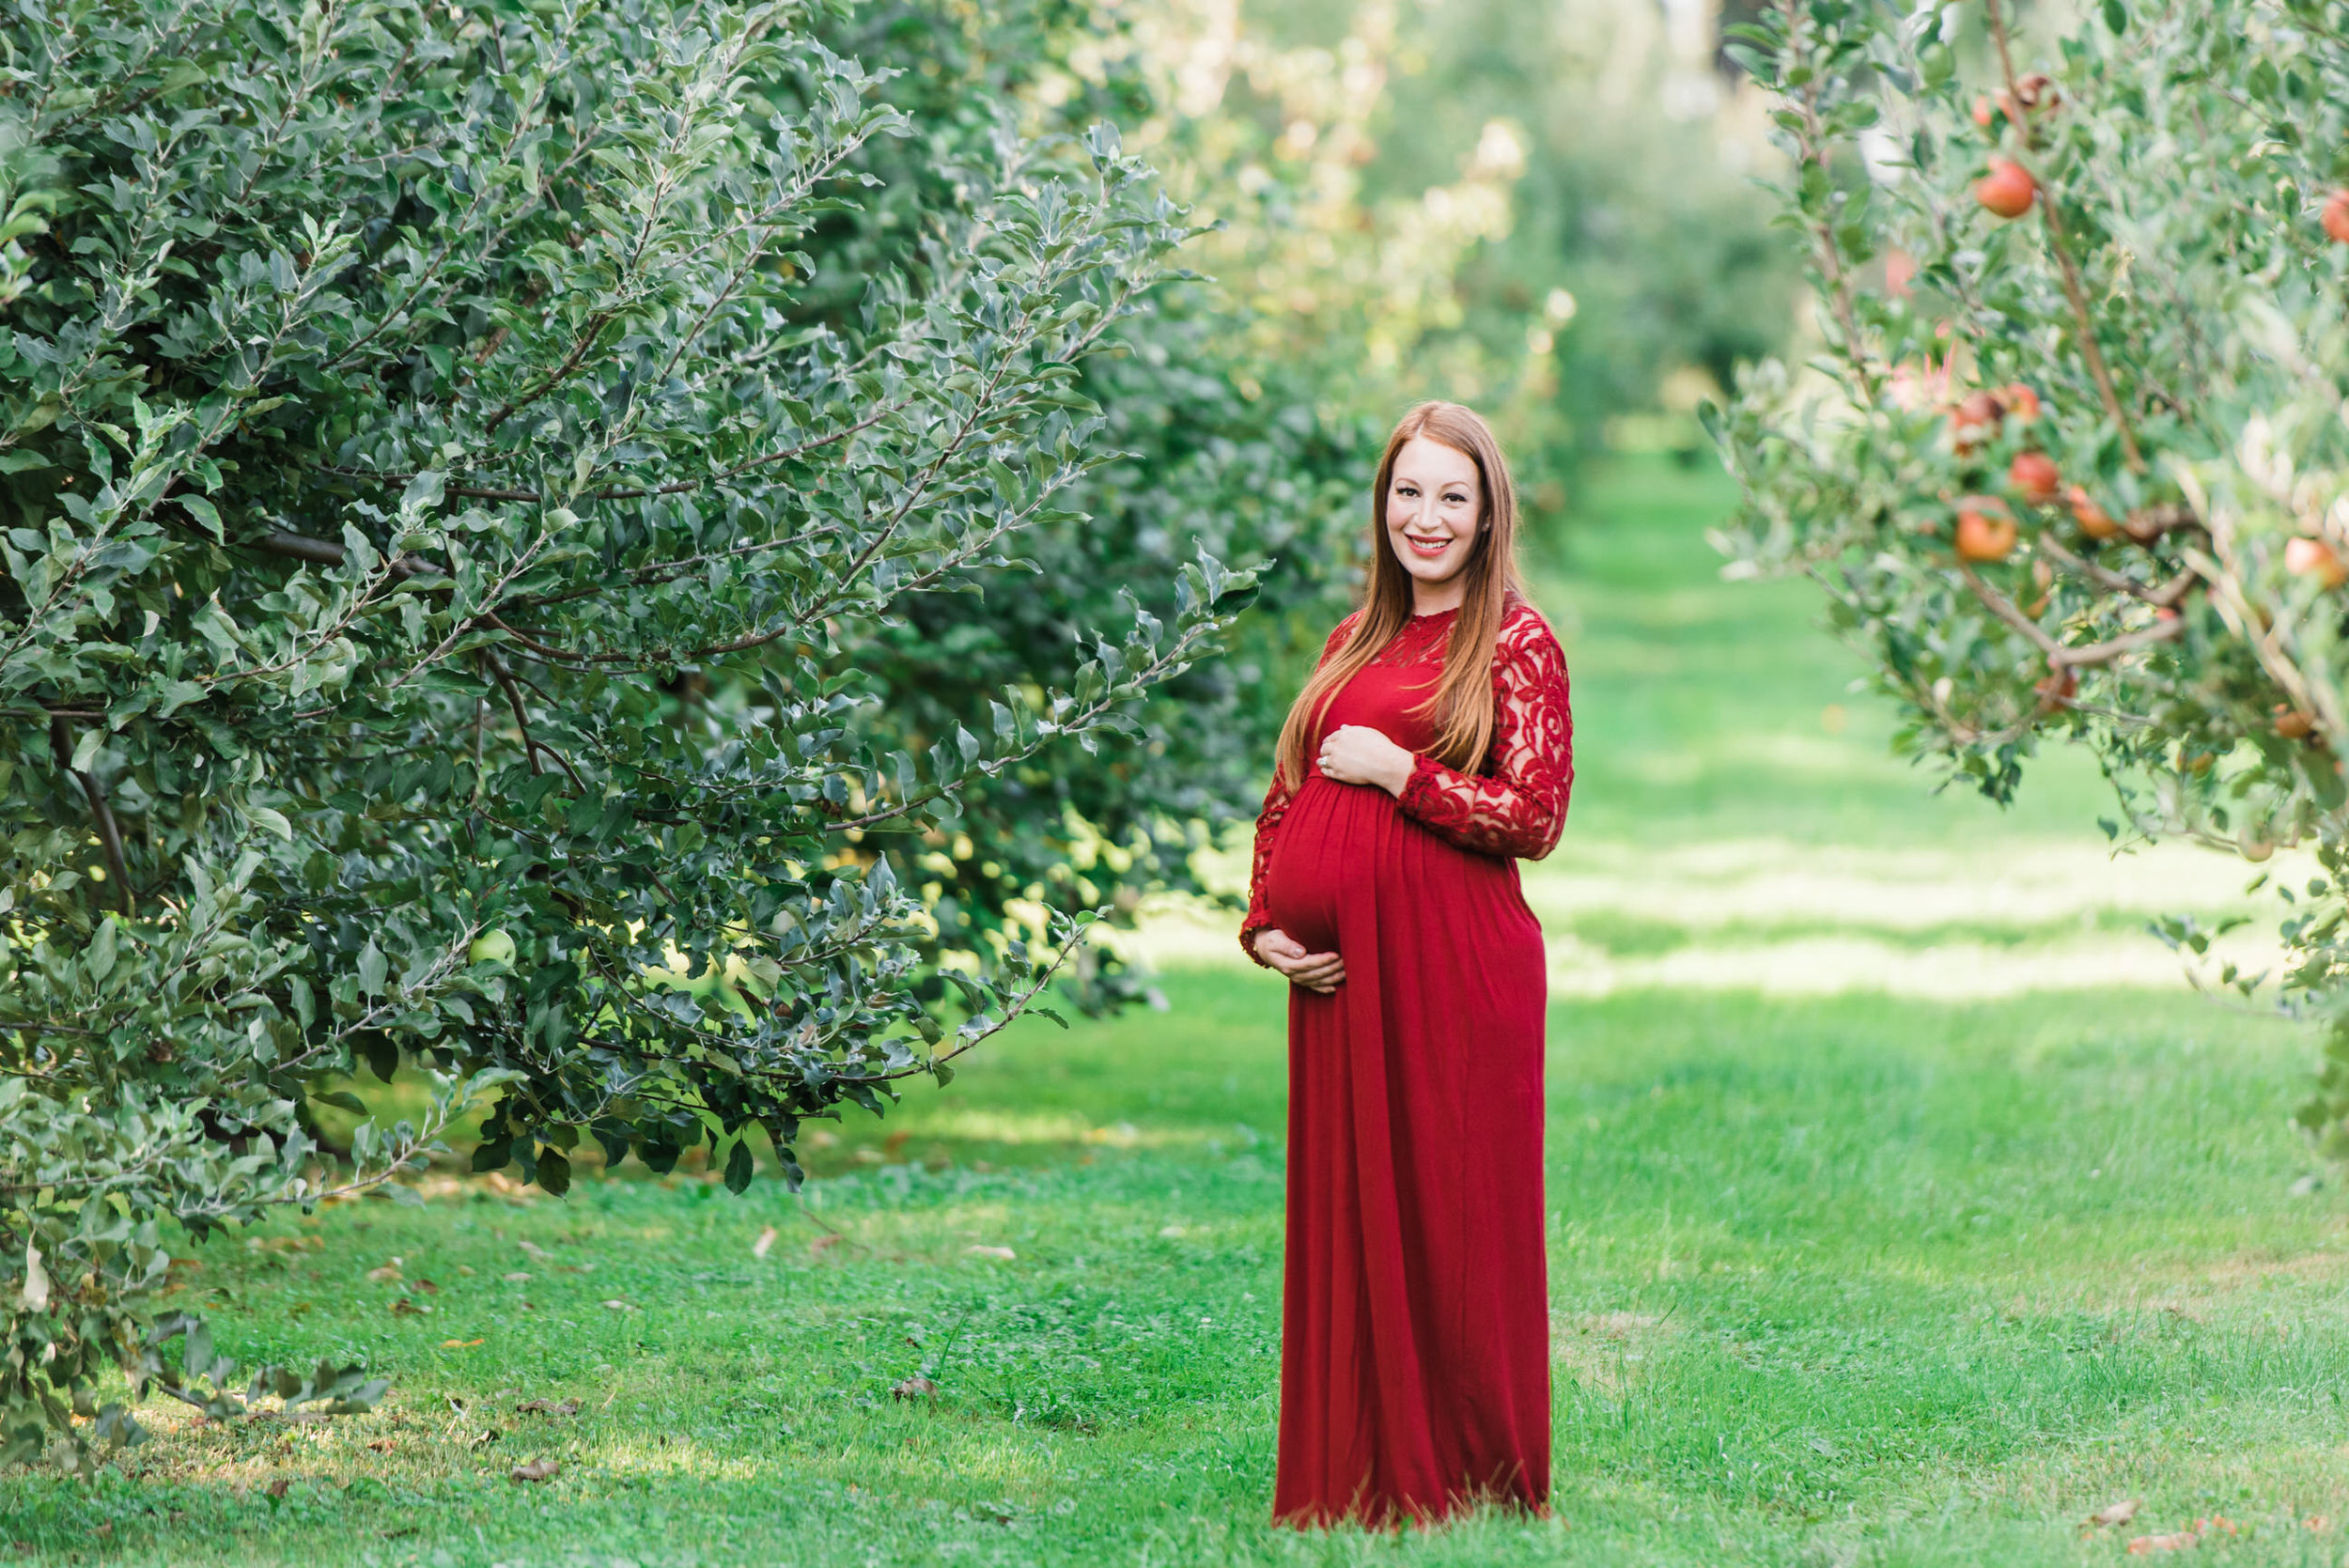 pittsburgh-maternity-photographers-winery-apple-orchard-session_26.jpg